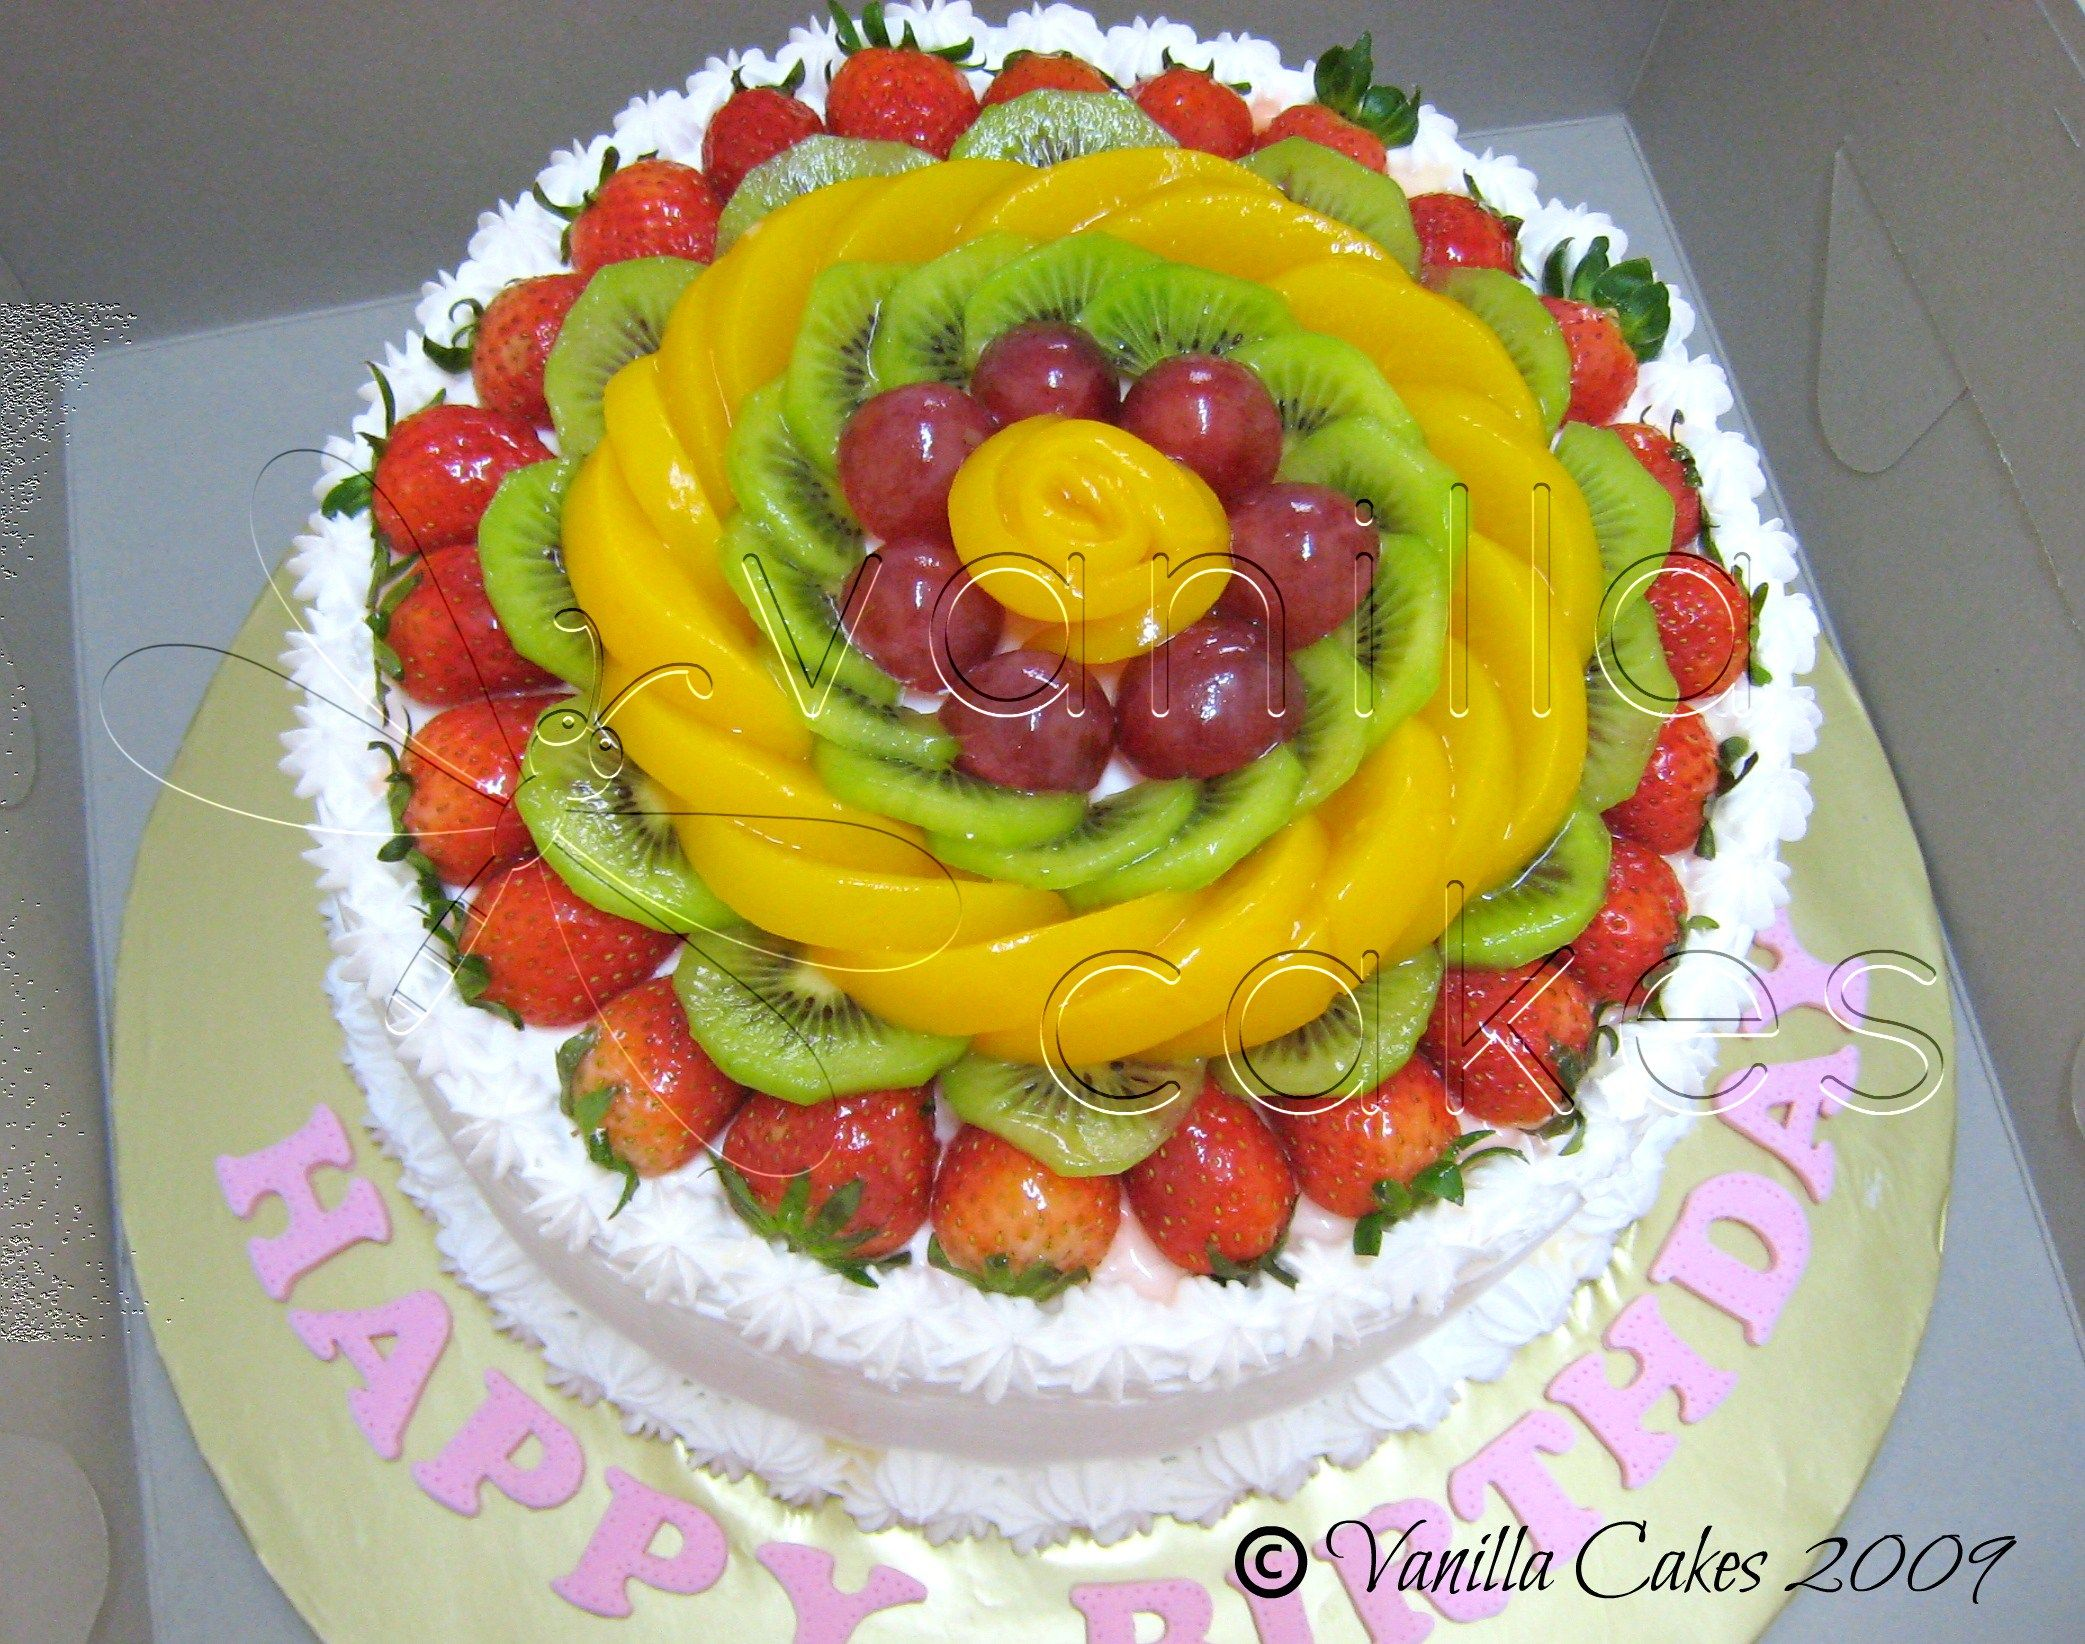 Sponge Cake Decoration Images : Fresh fruit cake - vanilla sponge with whipped cream and ...